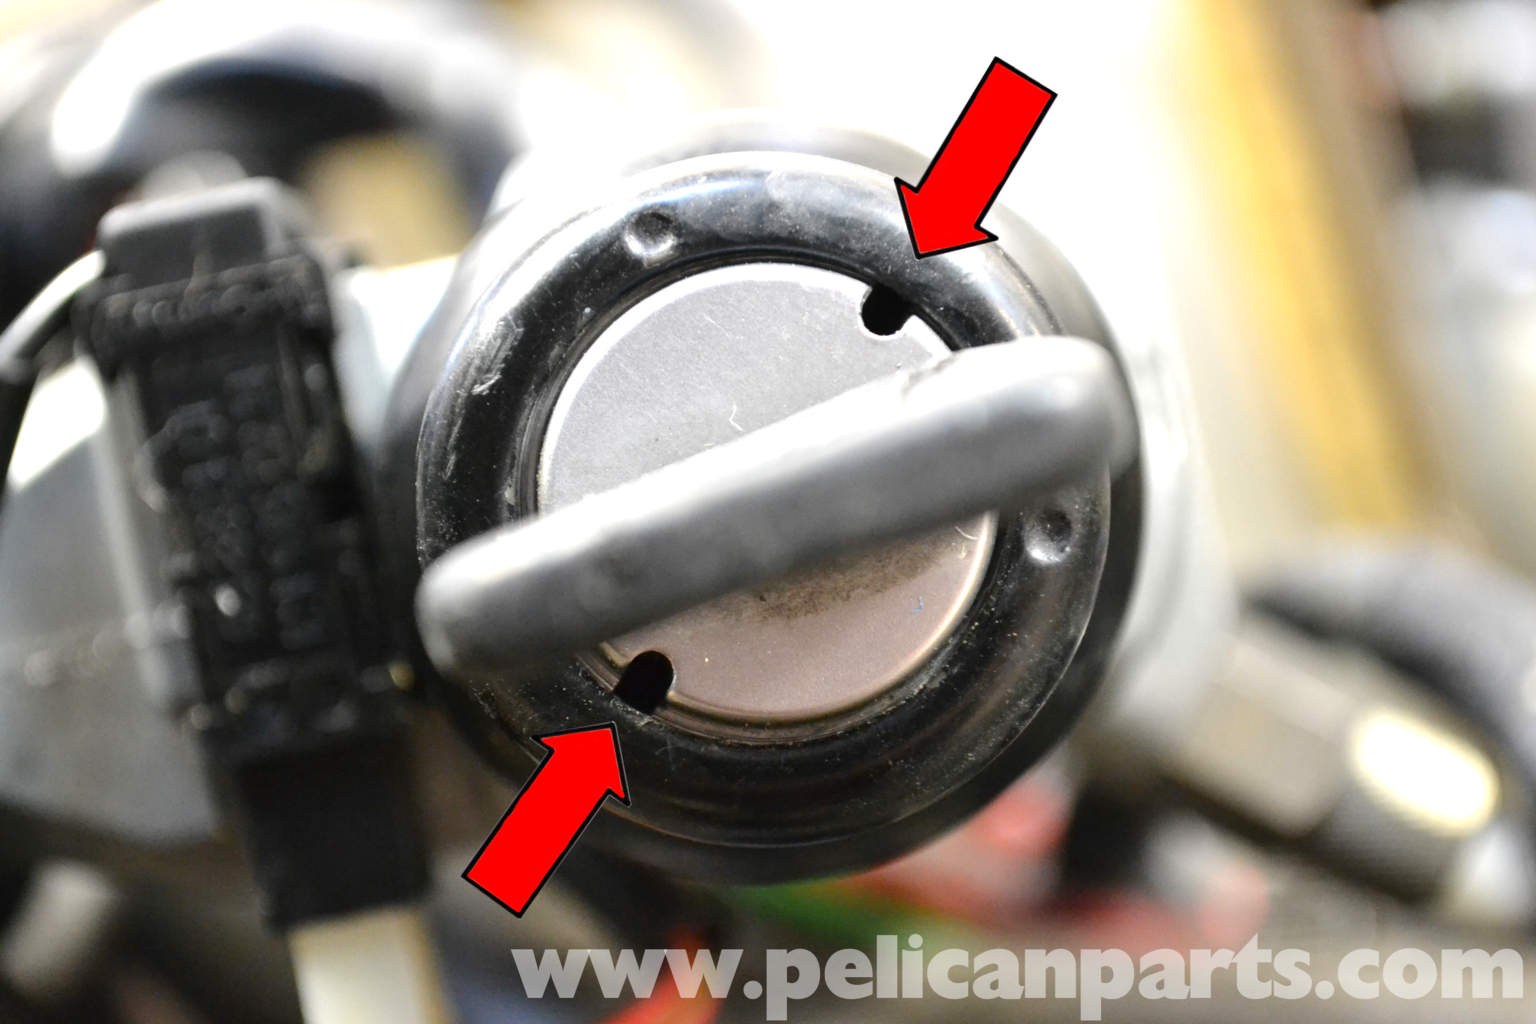 Replacing mercedes ignition tumbler for Mercedes benz ignition key troubleshooting